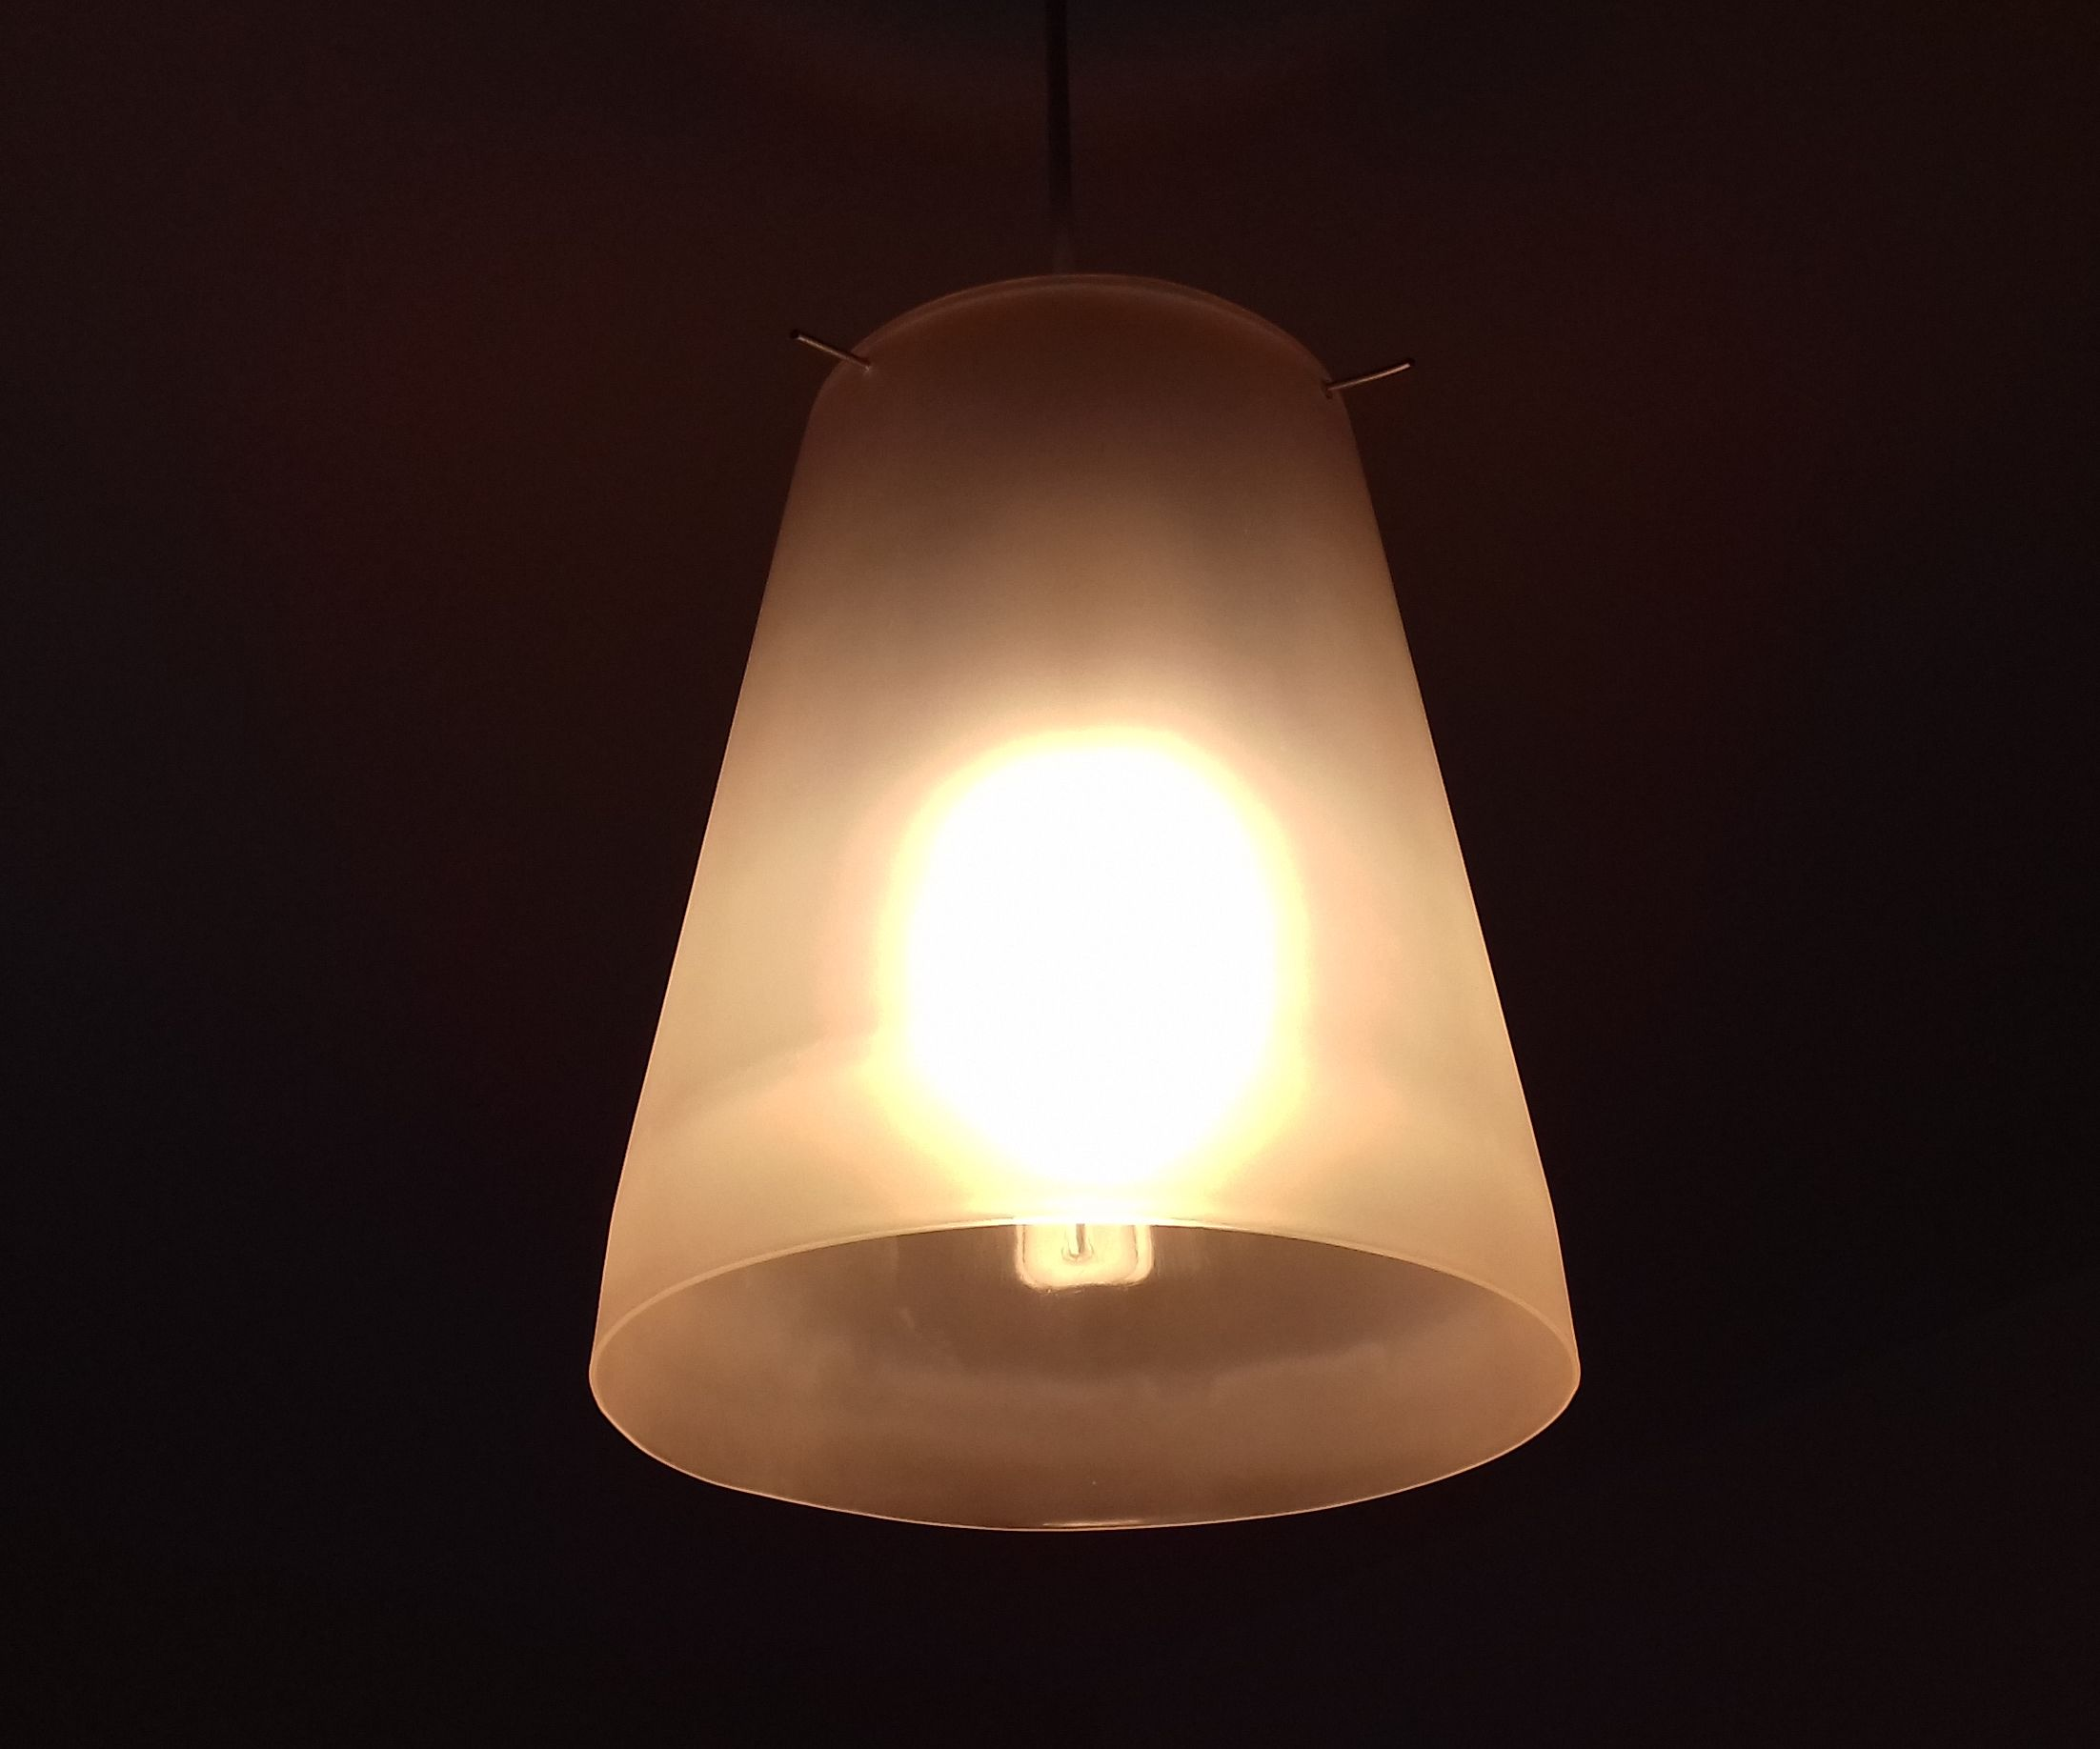 Convert a Paper Waste Bin Into a Lampshade for Less Than $3